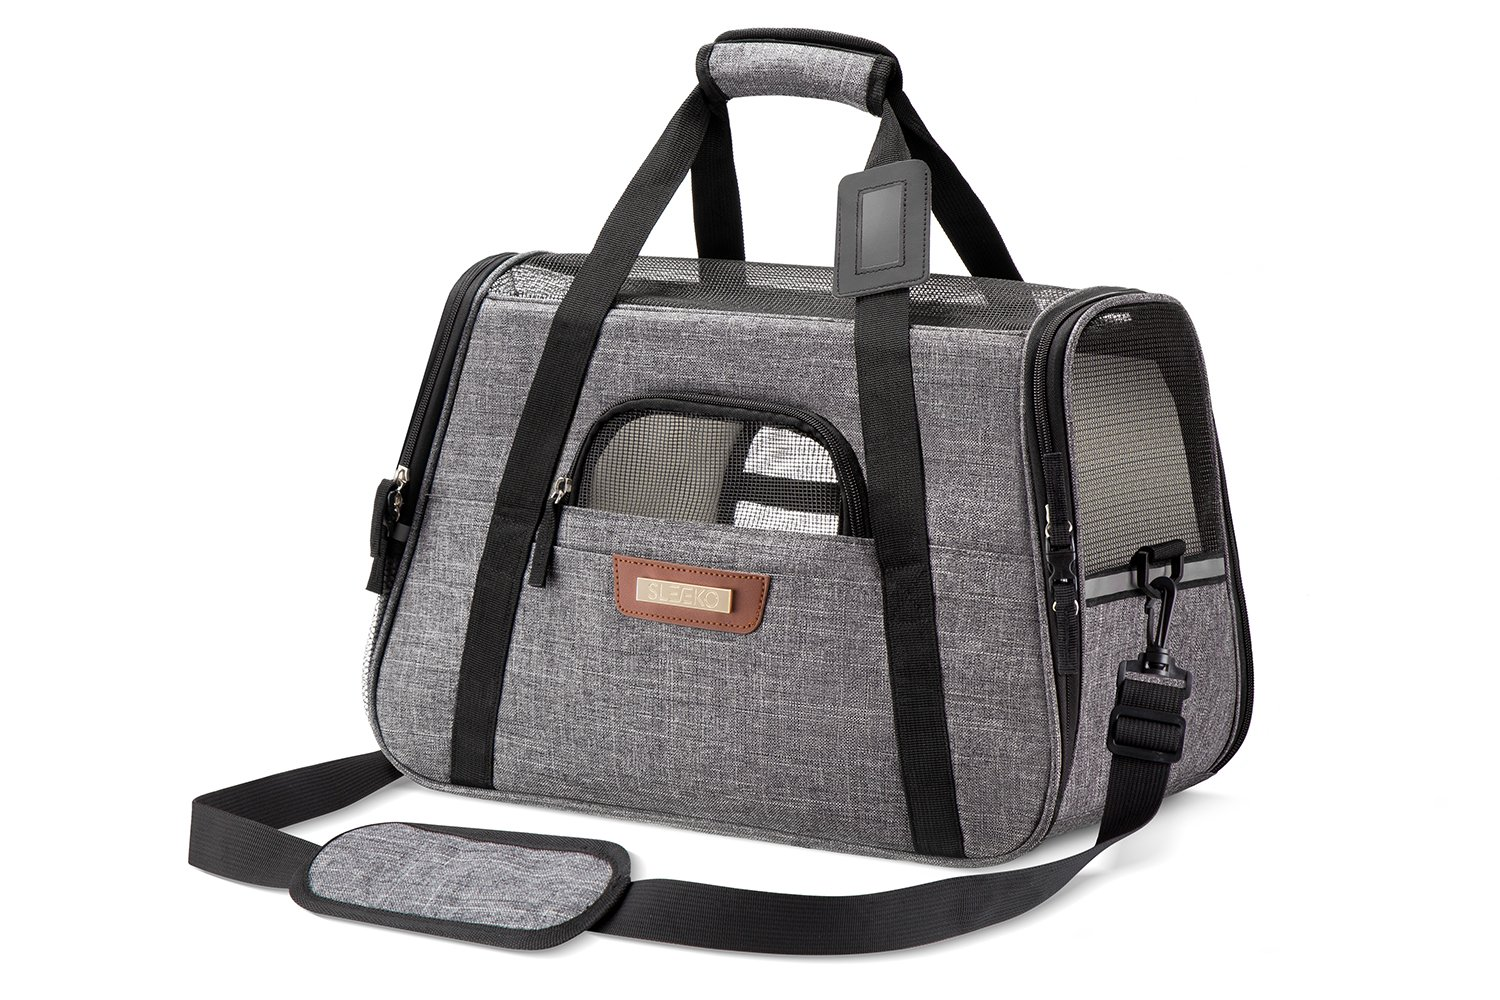 SLEEKO Pet Carrier Airline Approved for Cats and Dogs (Small) Under Seat Tote Bag w/Sling Shoulder Carry Strap | Padded Fleece Sleep Pads, Soft Side Mesh Breathability | Incl. Storage Case by SLEEKO (Image #1)